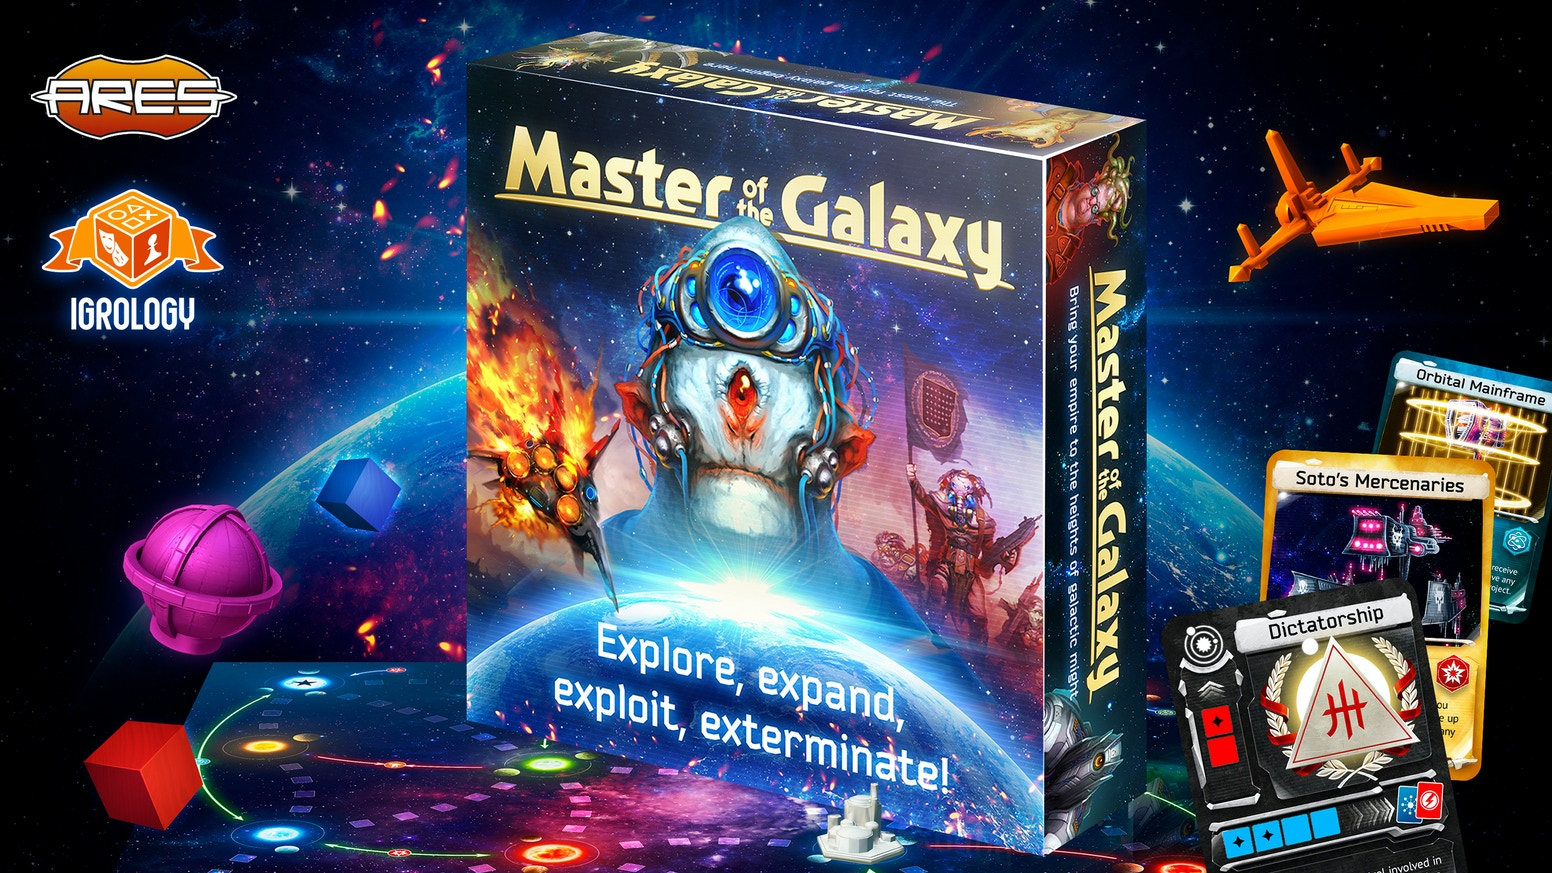 Jump to the stars and build your galactic civilization in this fast-paced, innovative 4X board game with bag-building & card drafting.